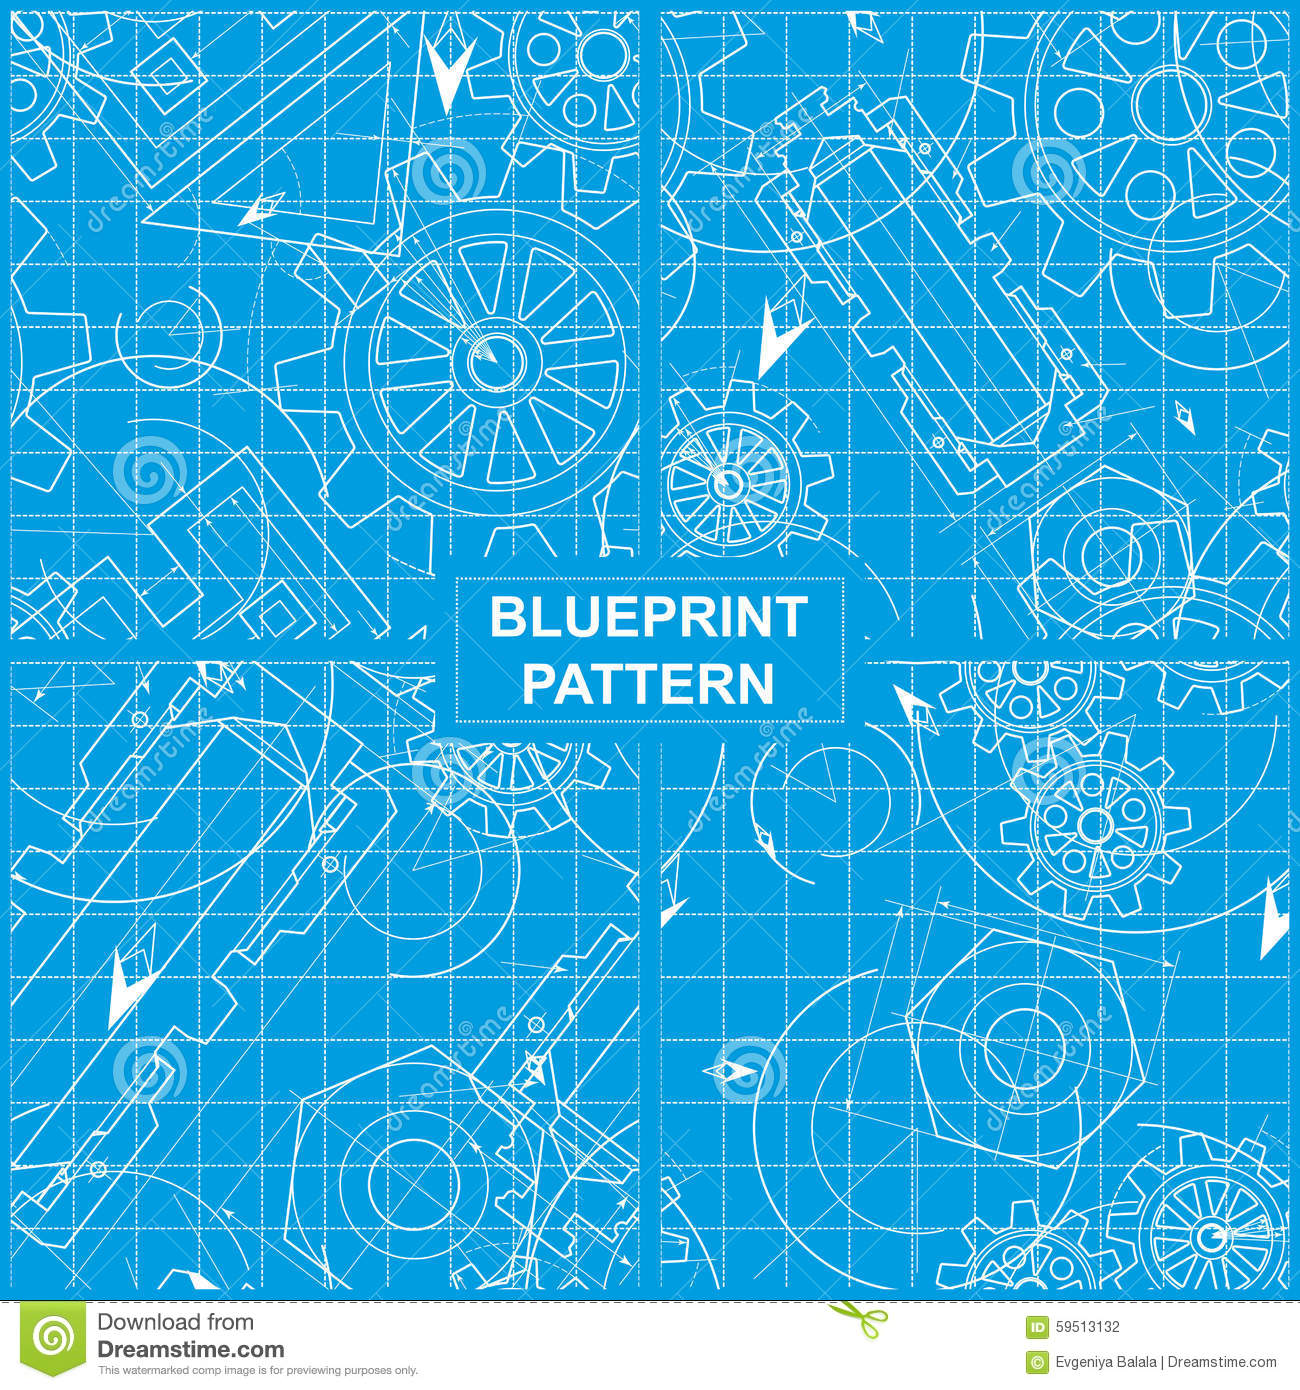 Blueprint pattern stock vector illustration of abstract 59513132 download comp malvernweather Gallery